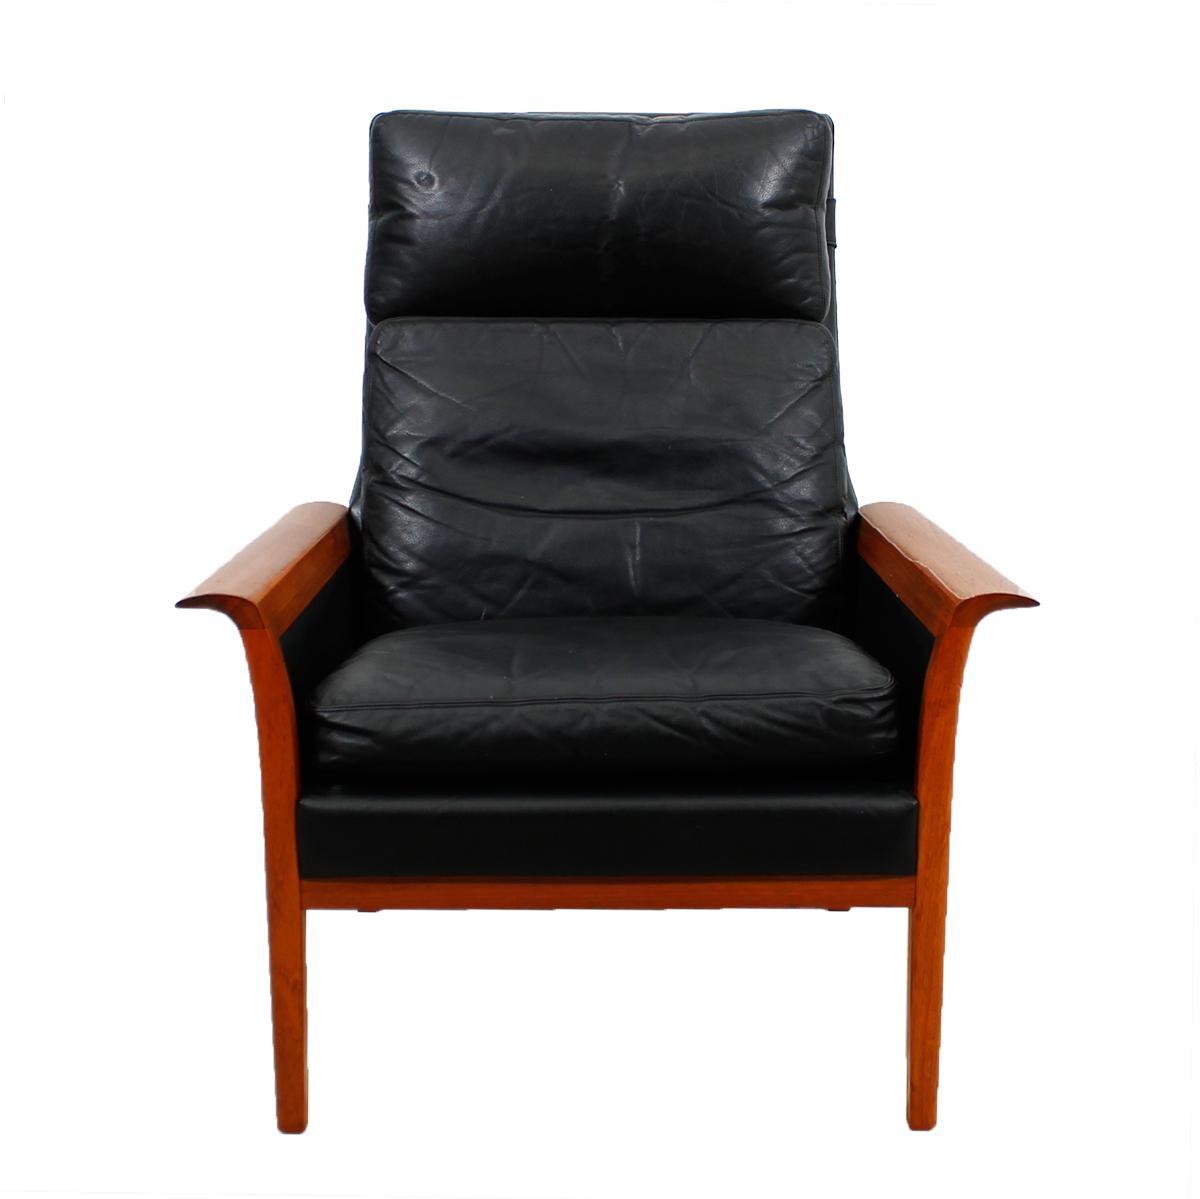 Danish Modern Leather Chair Hans Olsen Danish Modern Leather And Teak Lounge Chair